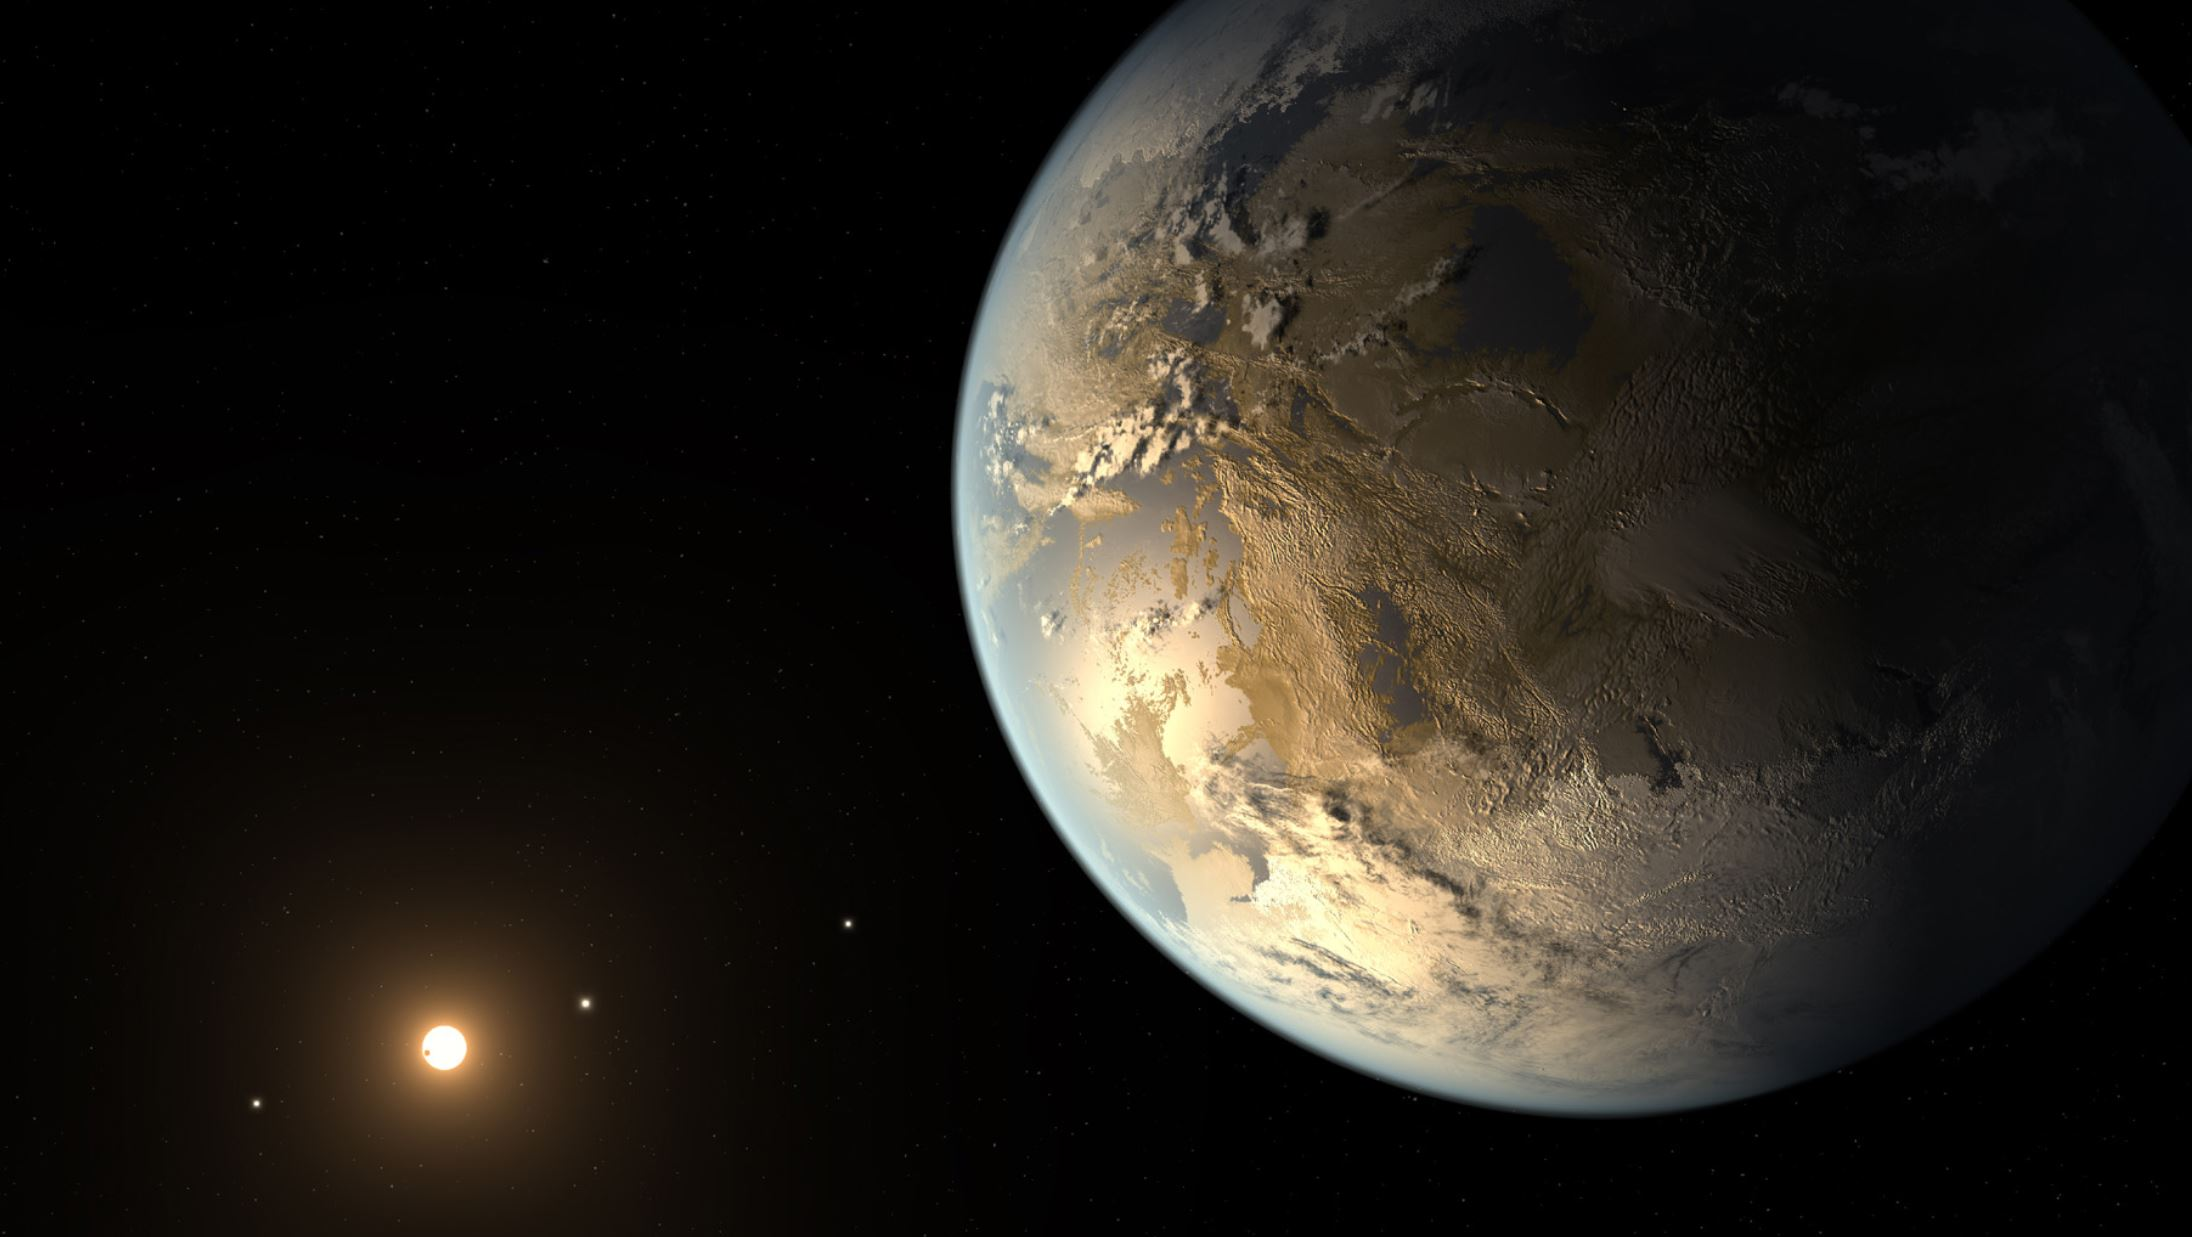 Artist's concept depicts Kepler-186f, the first validated Earth-size planet to orbit a distant star in the habitable zone. -   Image credits:  NASA/Ames/SETI Institute/JPL-Caltech